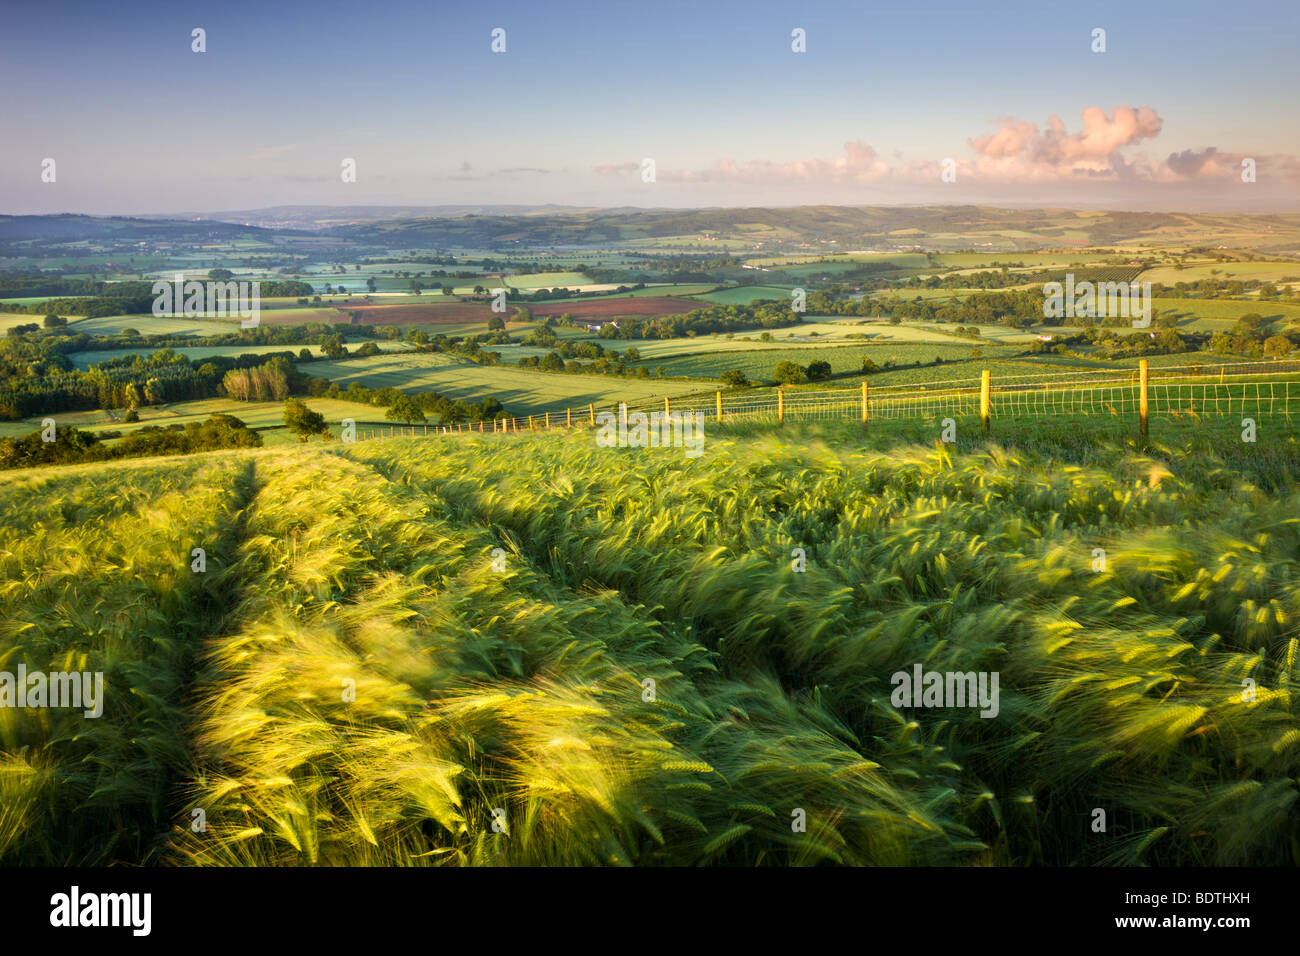 Golden ripened barley growing in a hilltop field in rural Devon, England. Summer (June) 2009 Stock Photo